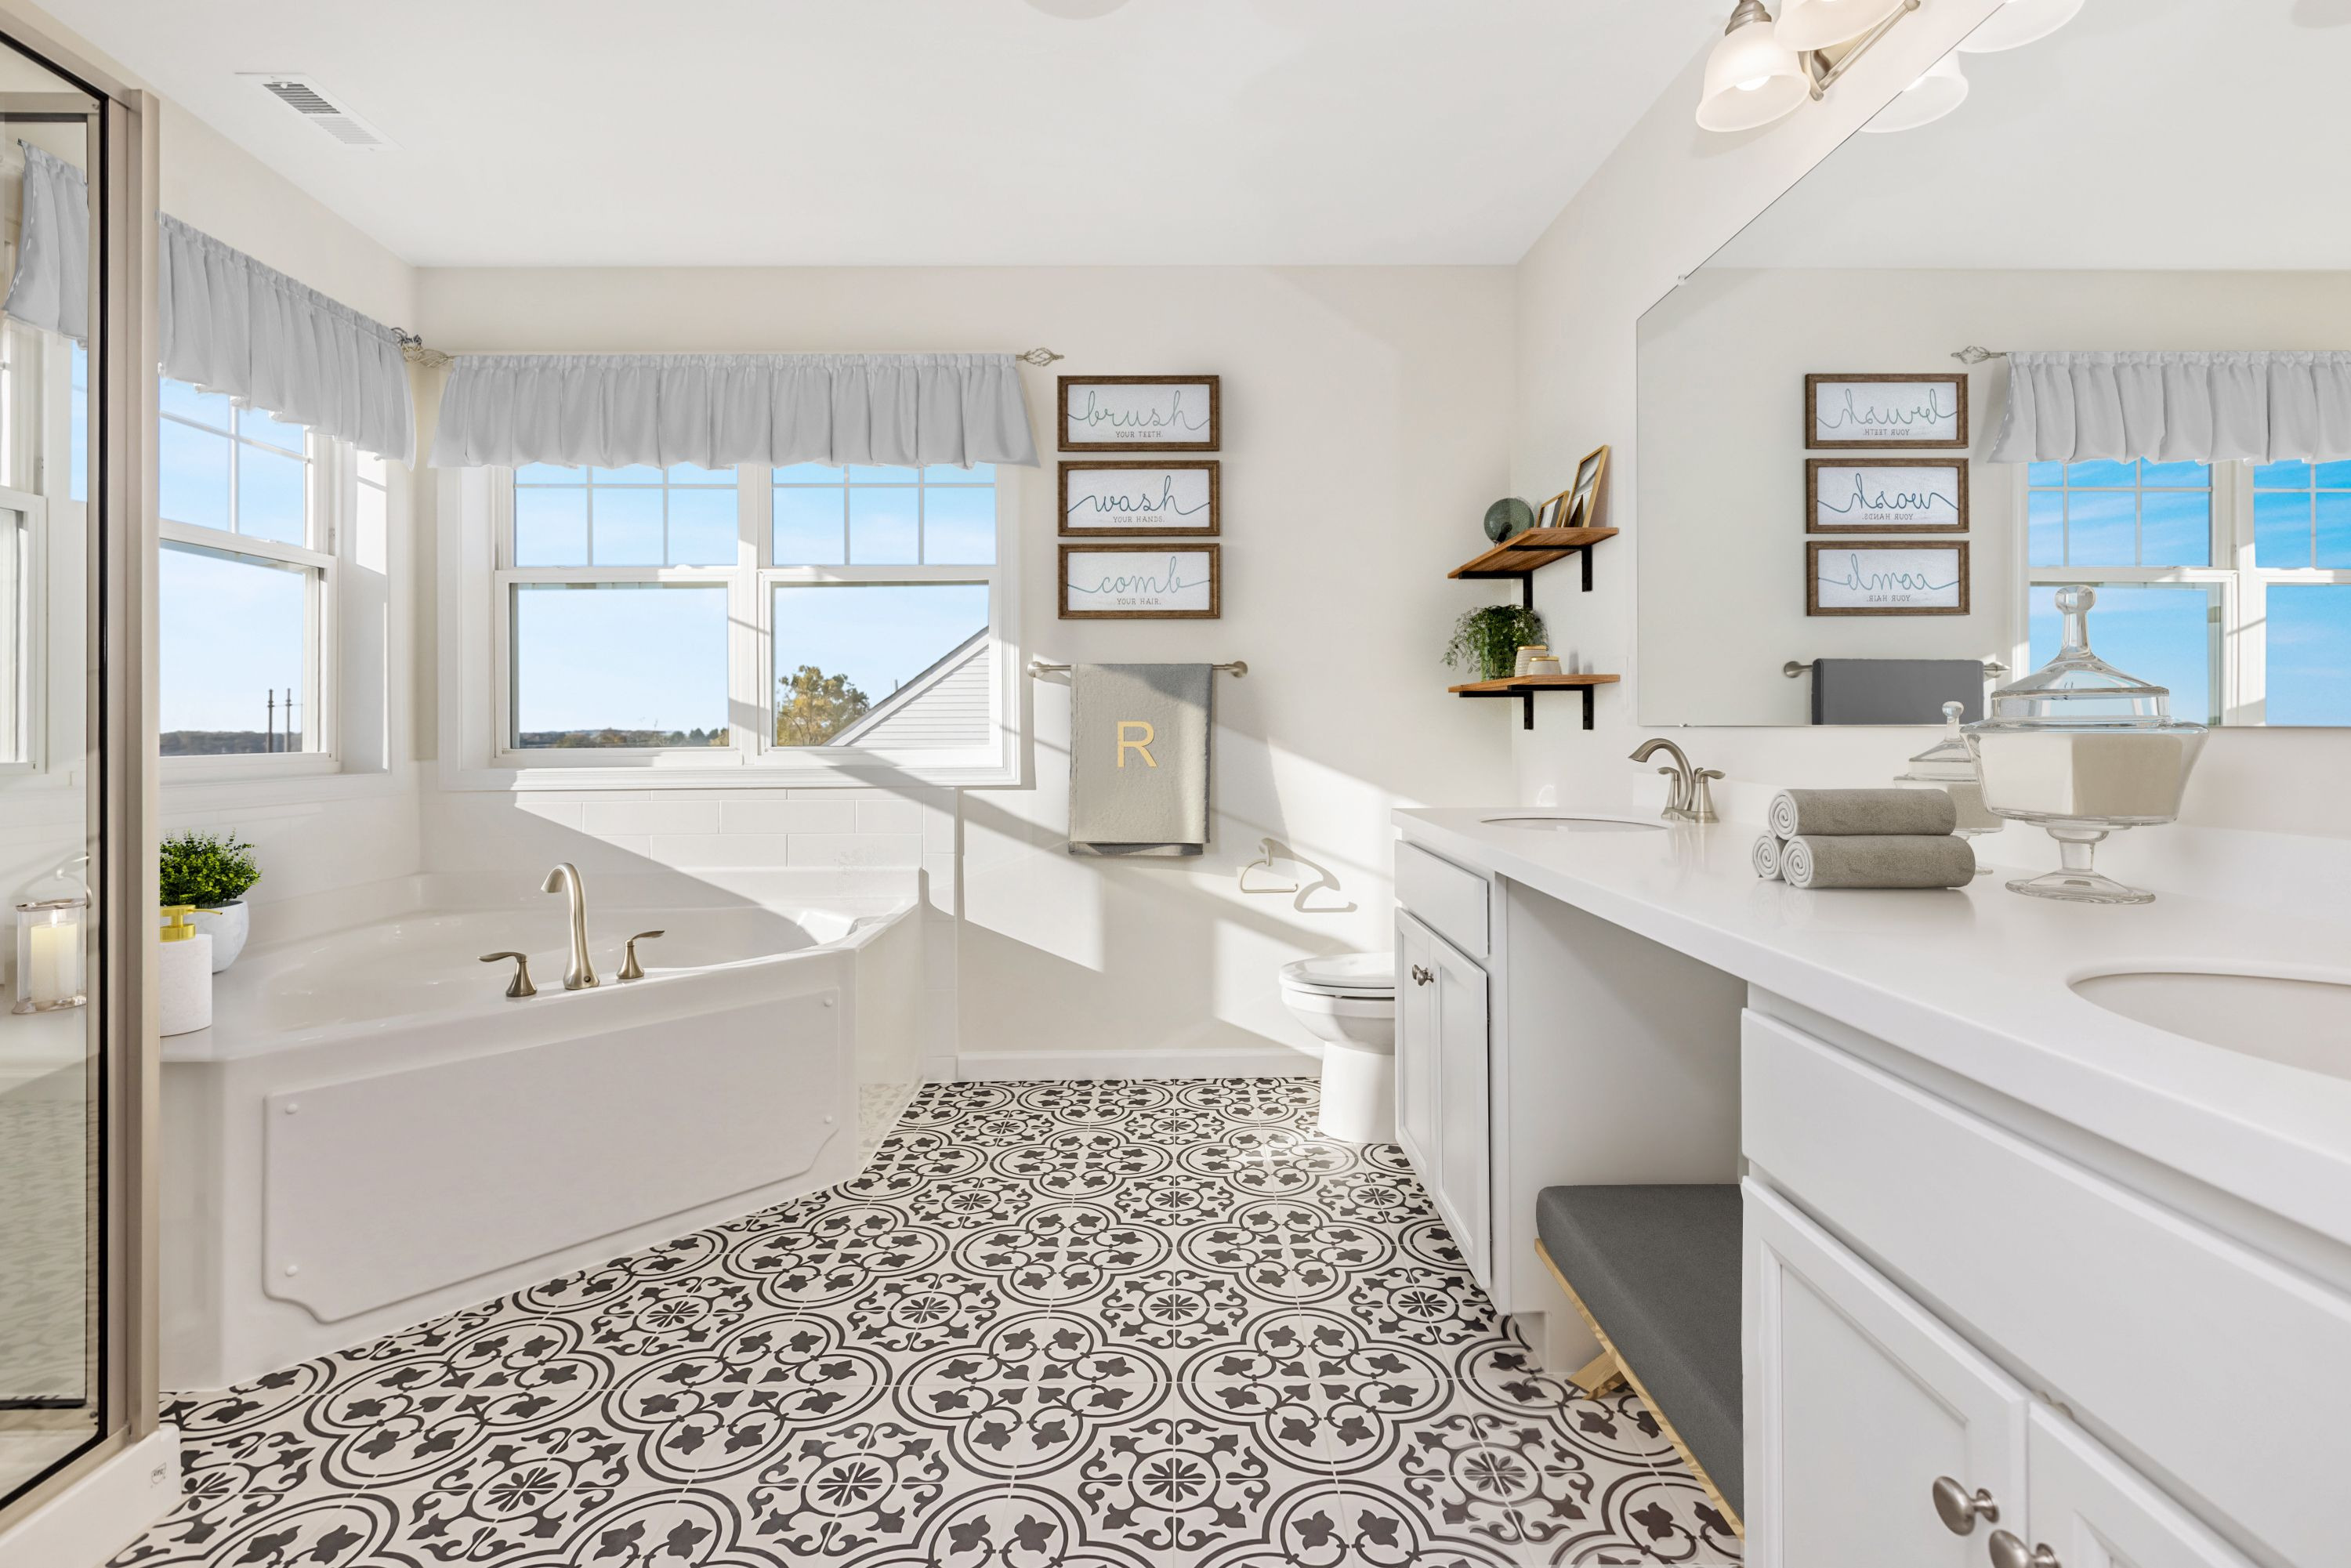 Bathroom featured in the Cambridge By Rouse Chamberlin Homes in Philadelphia, PA